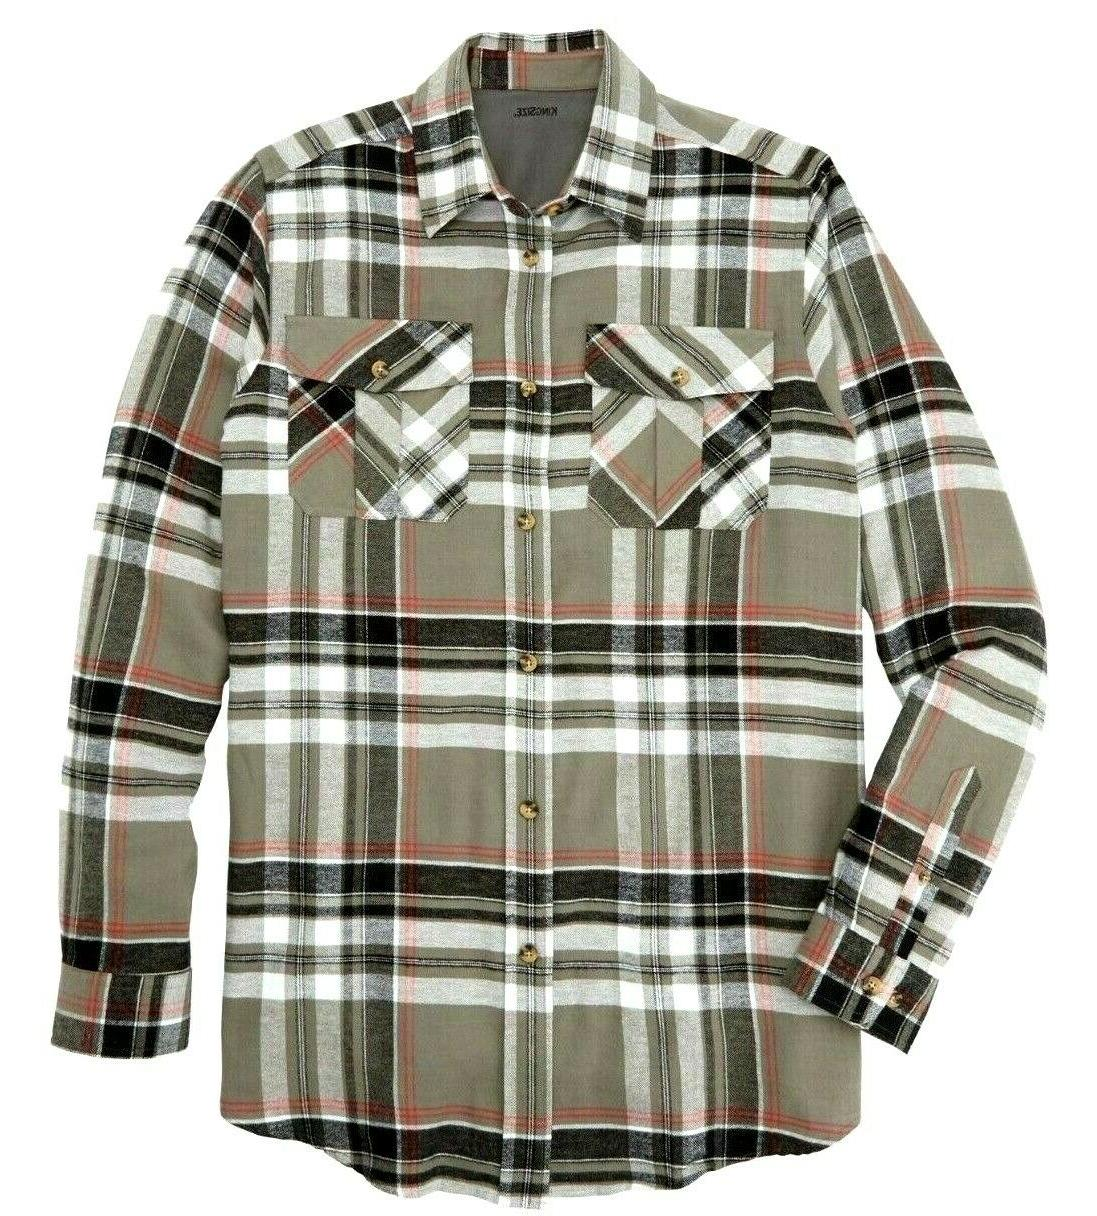 KingSize Plaid Flannel Long